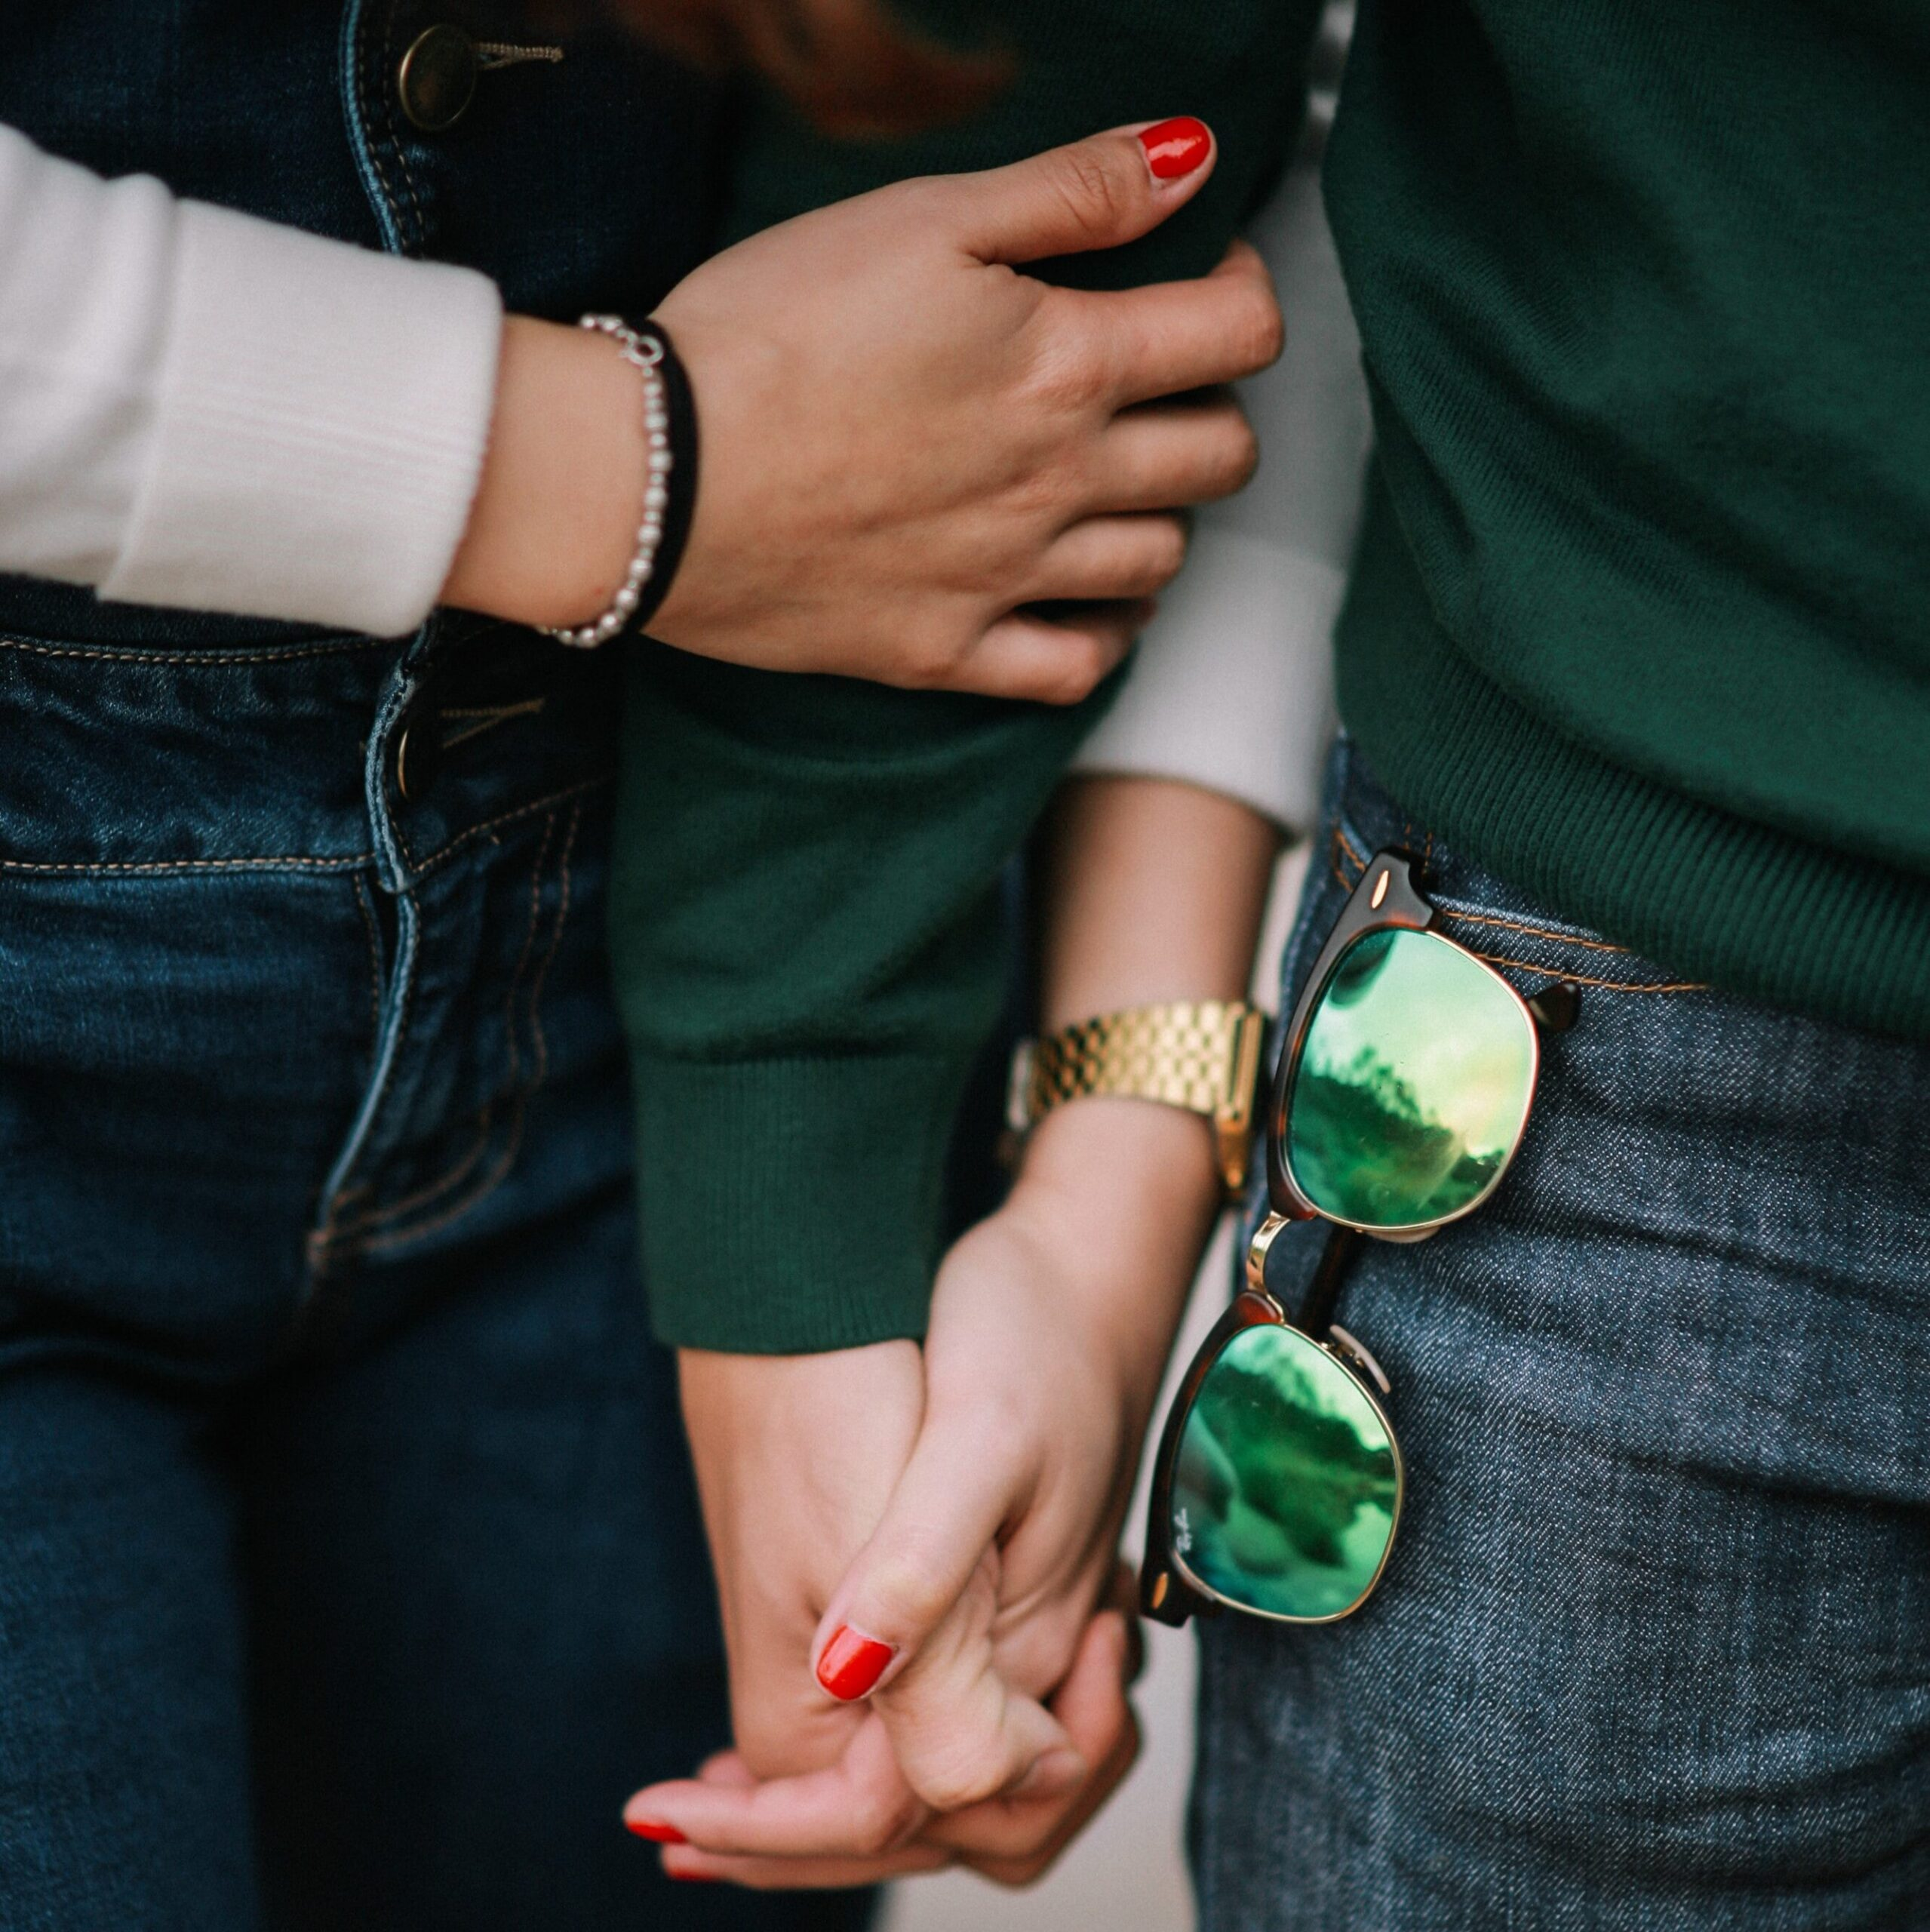 A couple holding hands.